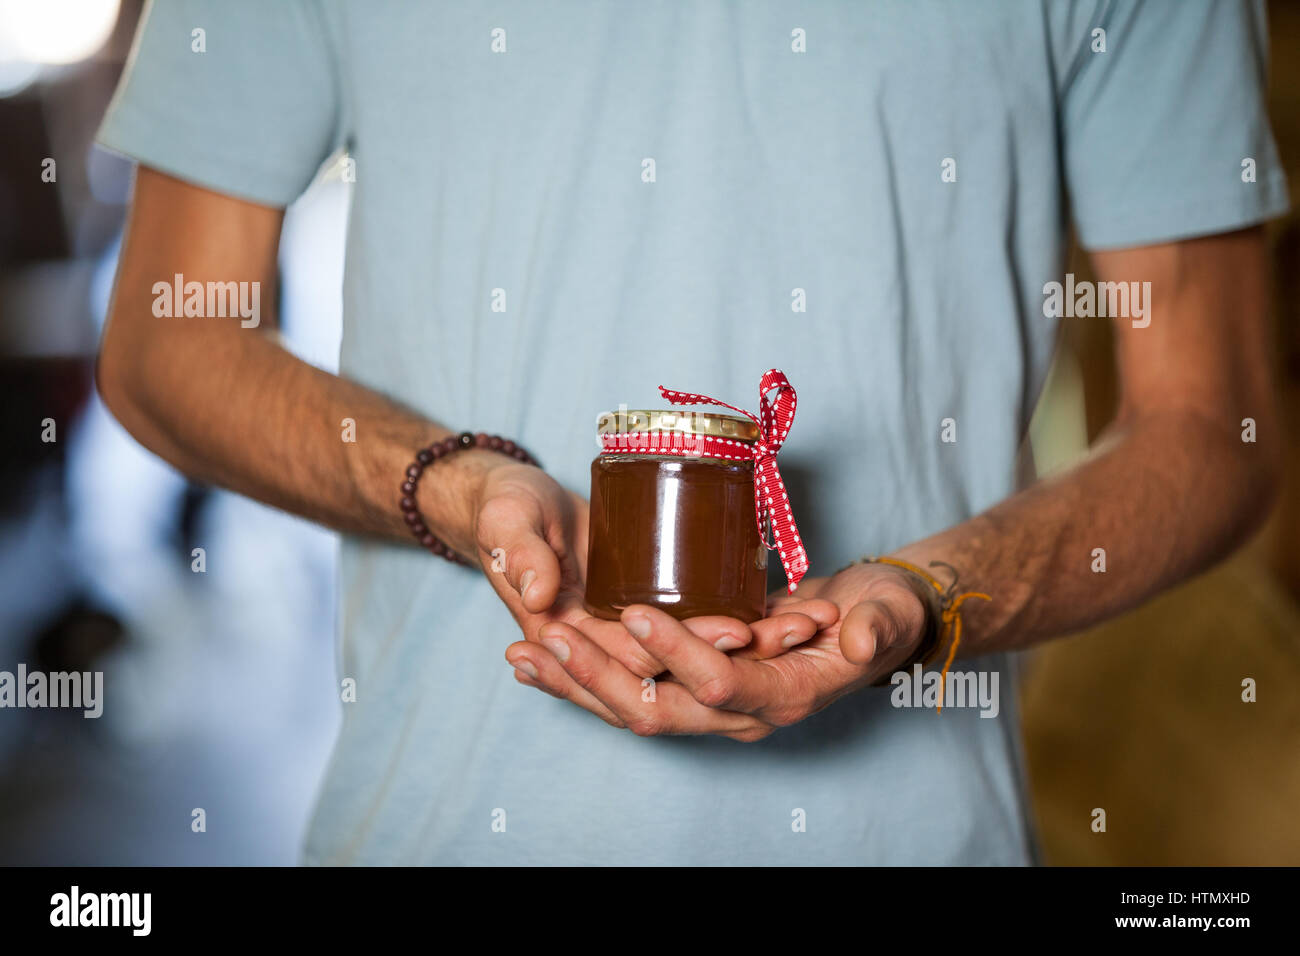 Mid-section of man holding a jar of jam in market - Stock Image